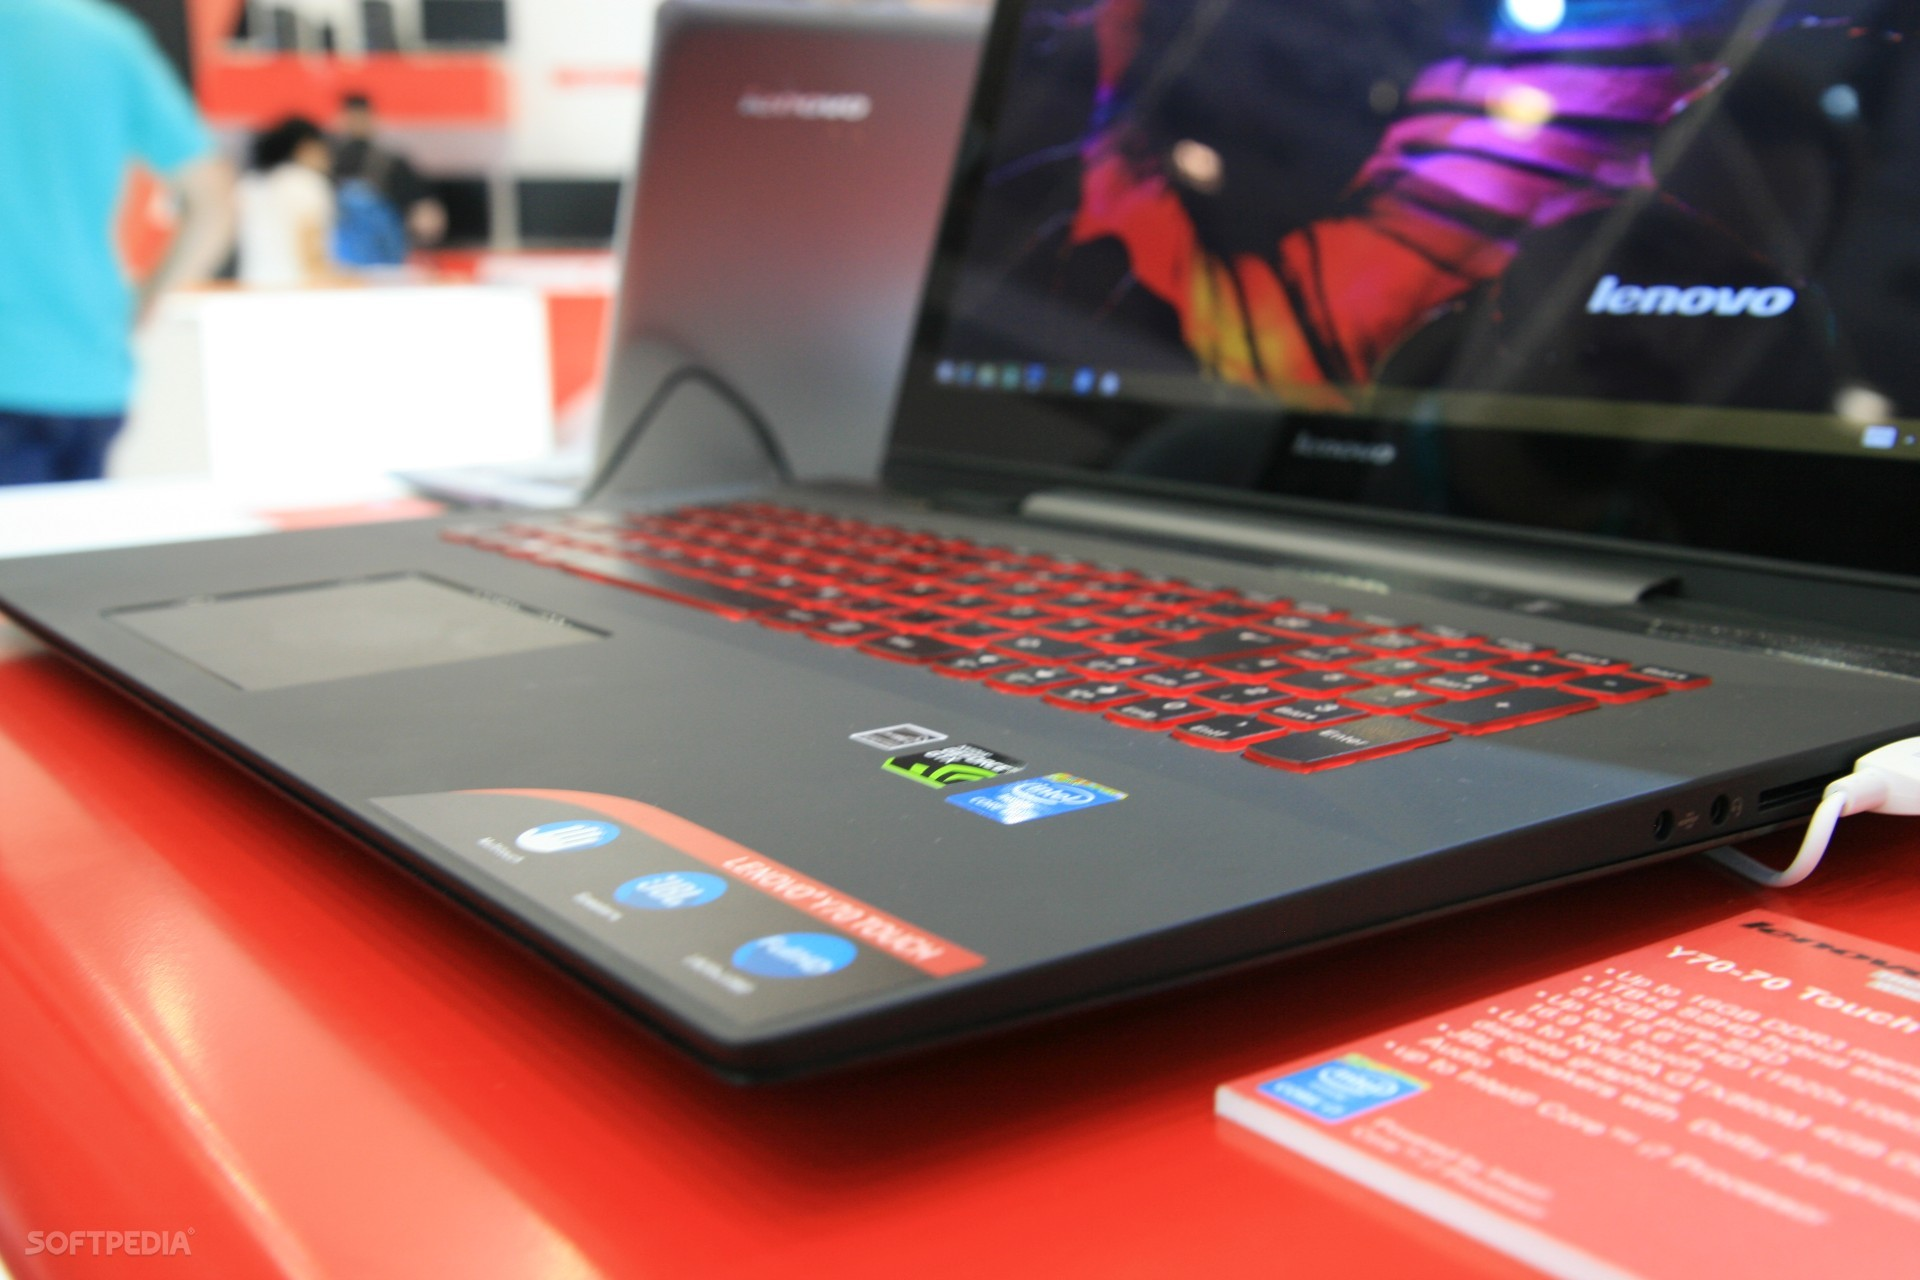 Hands-On-Lenovo-IdeaPad-Y70-Gaming-Laptop-with-Touch-Screen-457906-5